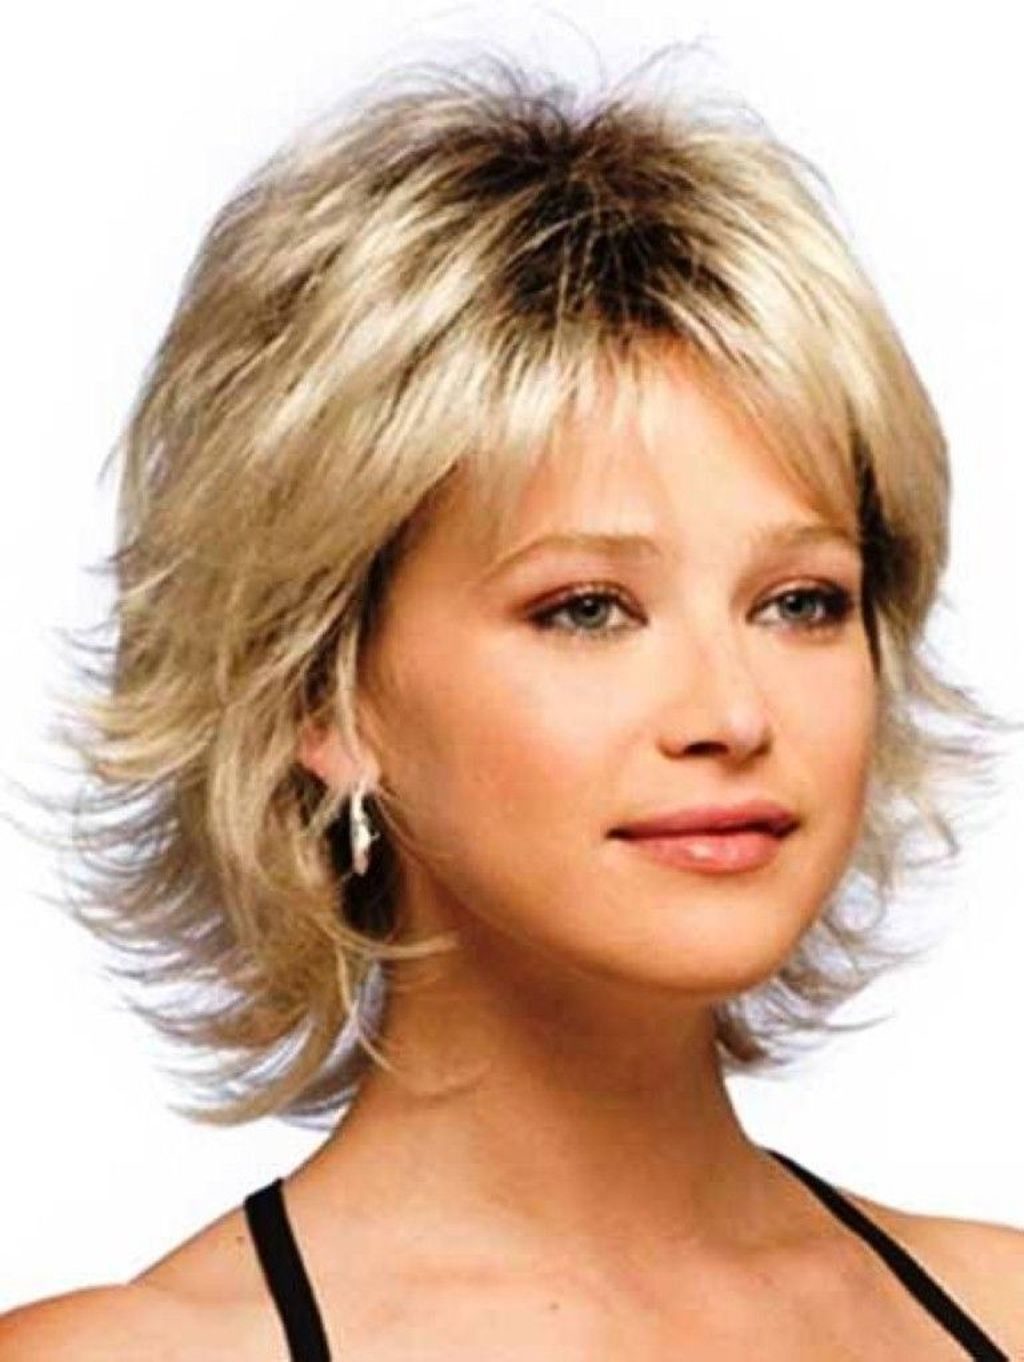 20+ Awesome Short Layered Hairstyles Ideas #shortlayeredhairstyles